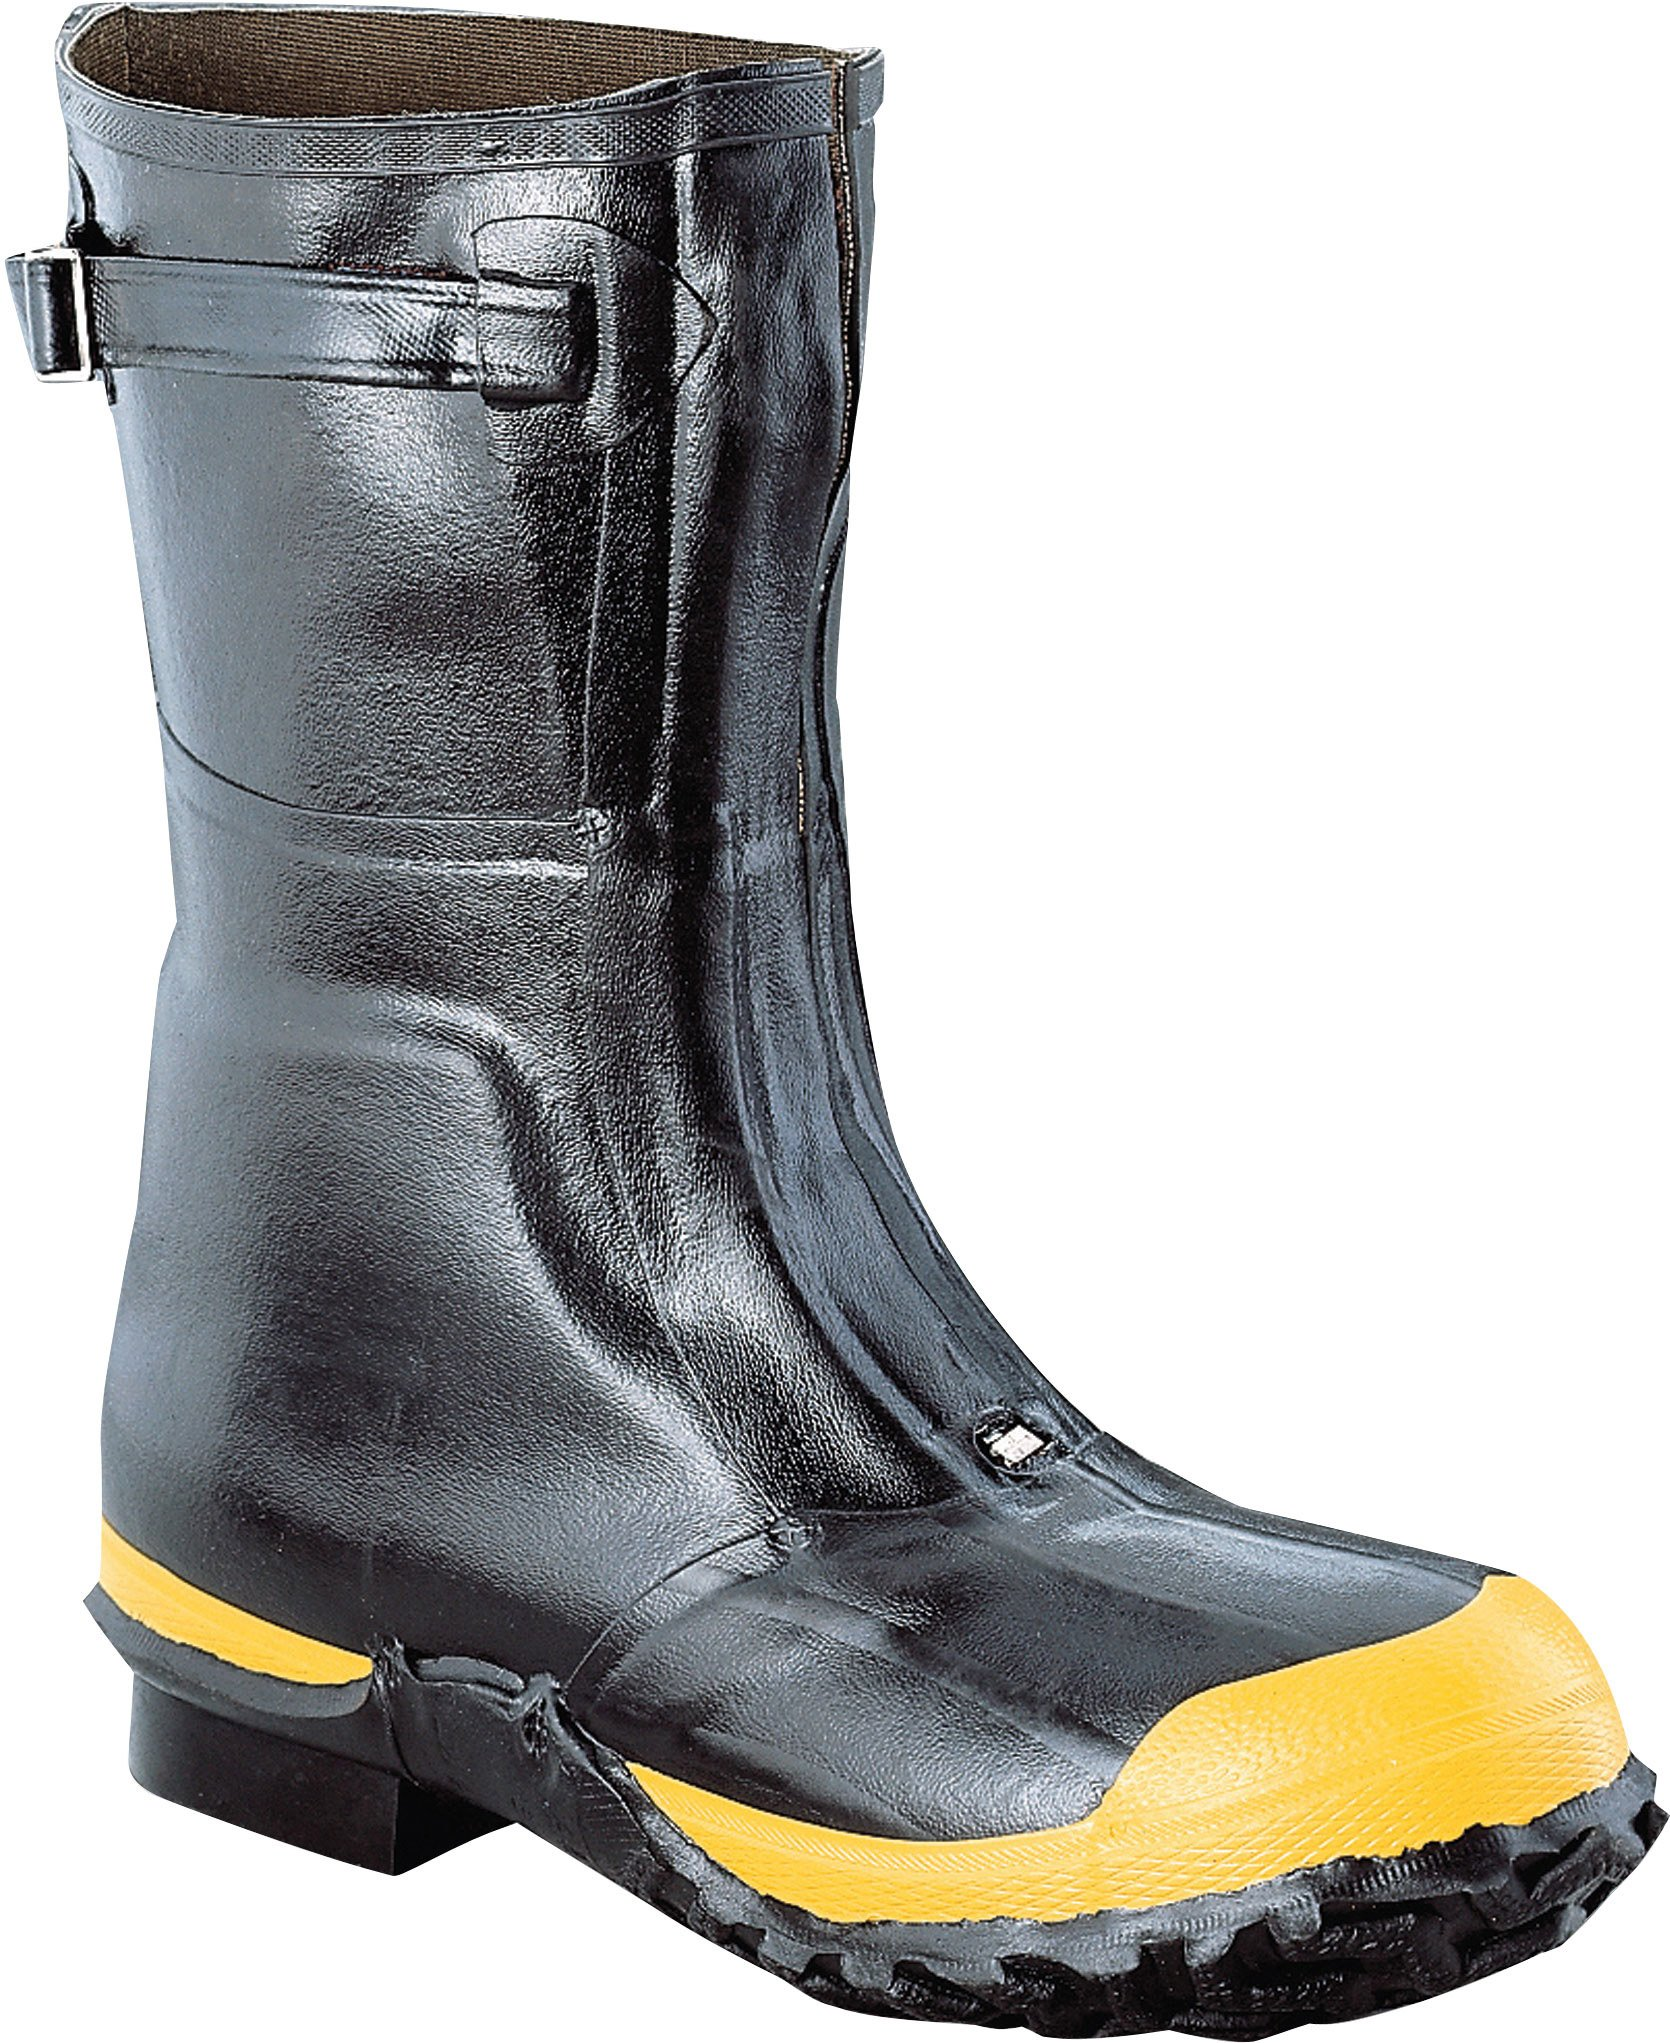 Ranger Lineman's Zip Pac 12'' Heavy-Duty Insulated Rubber Men's Work Boots with Steel Toe & Steel Midsole, Black & Yellow (21622) by Honeywell